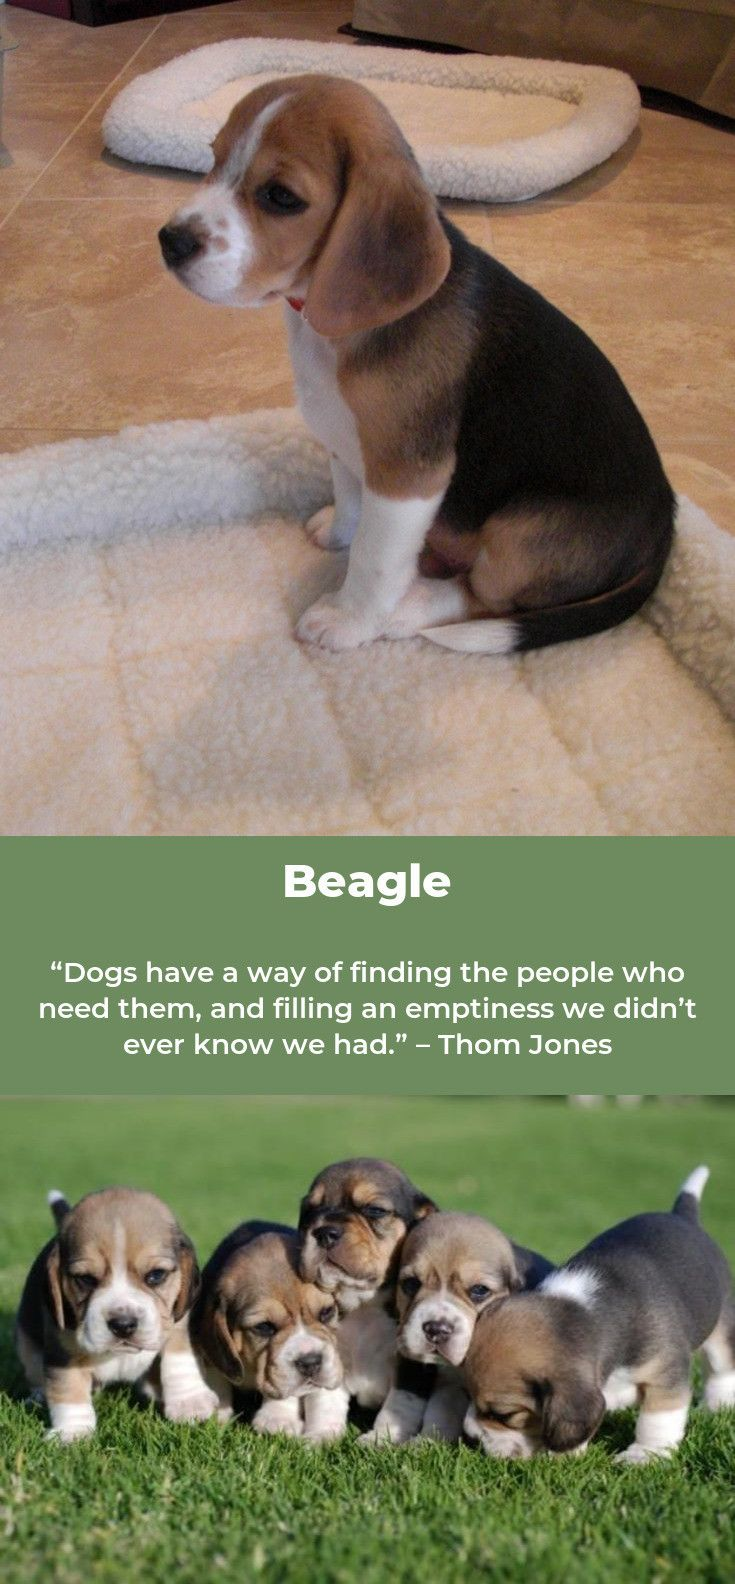 Beagle Beaglemania Beagles Art Beagle Dog Dog Behavior Dog Training